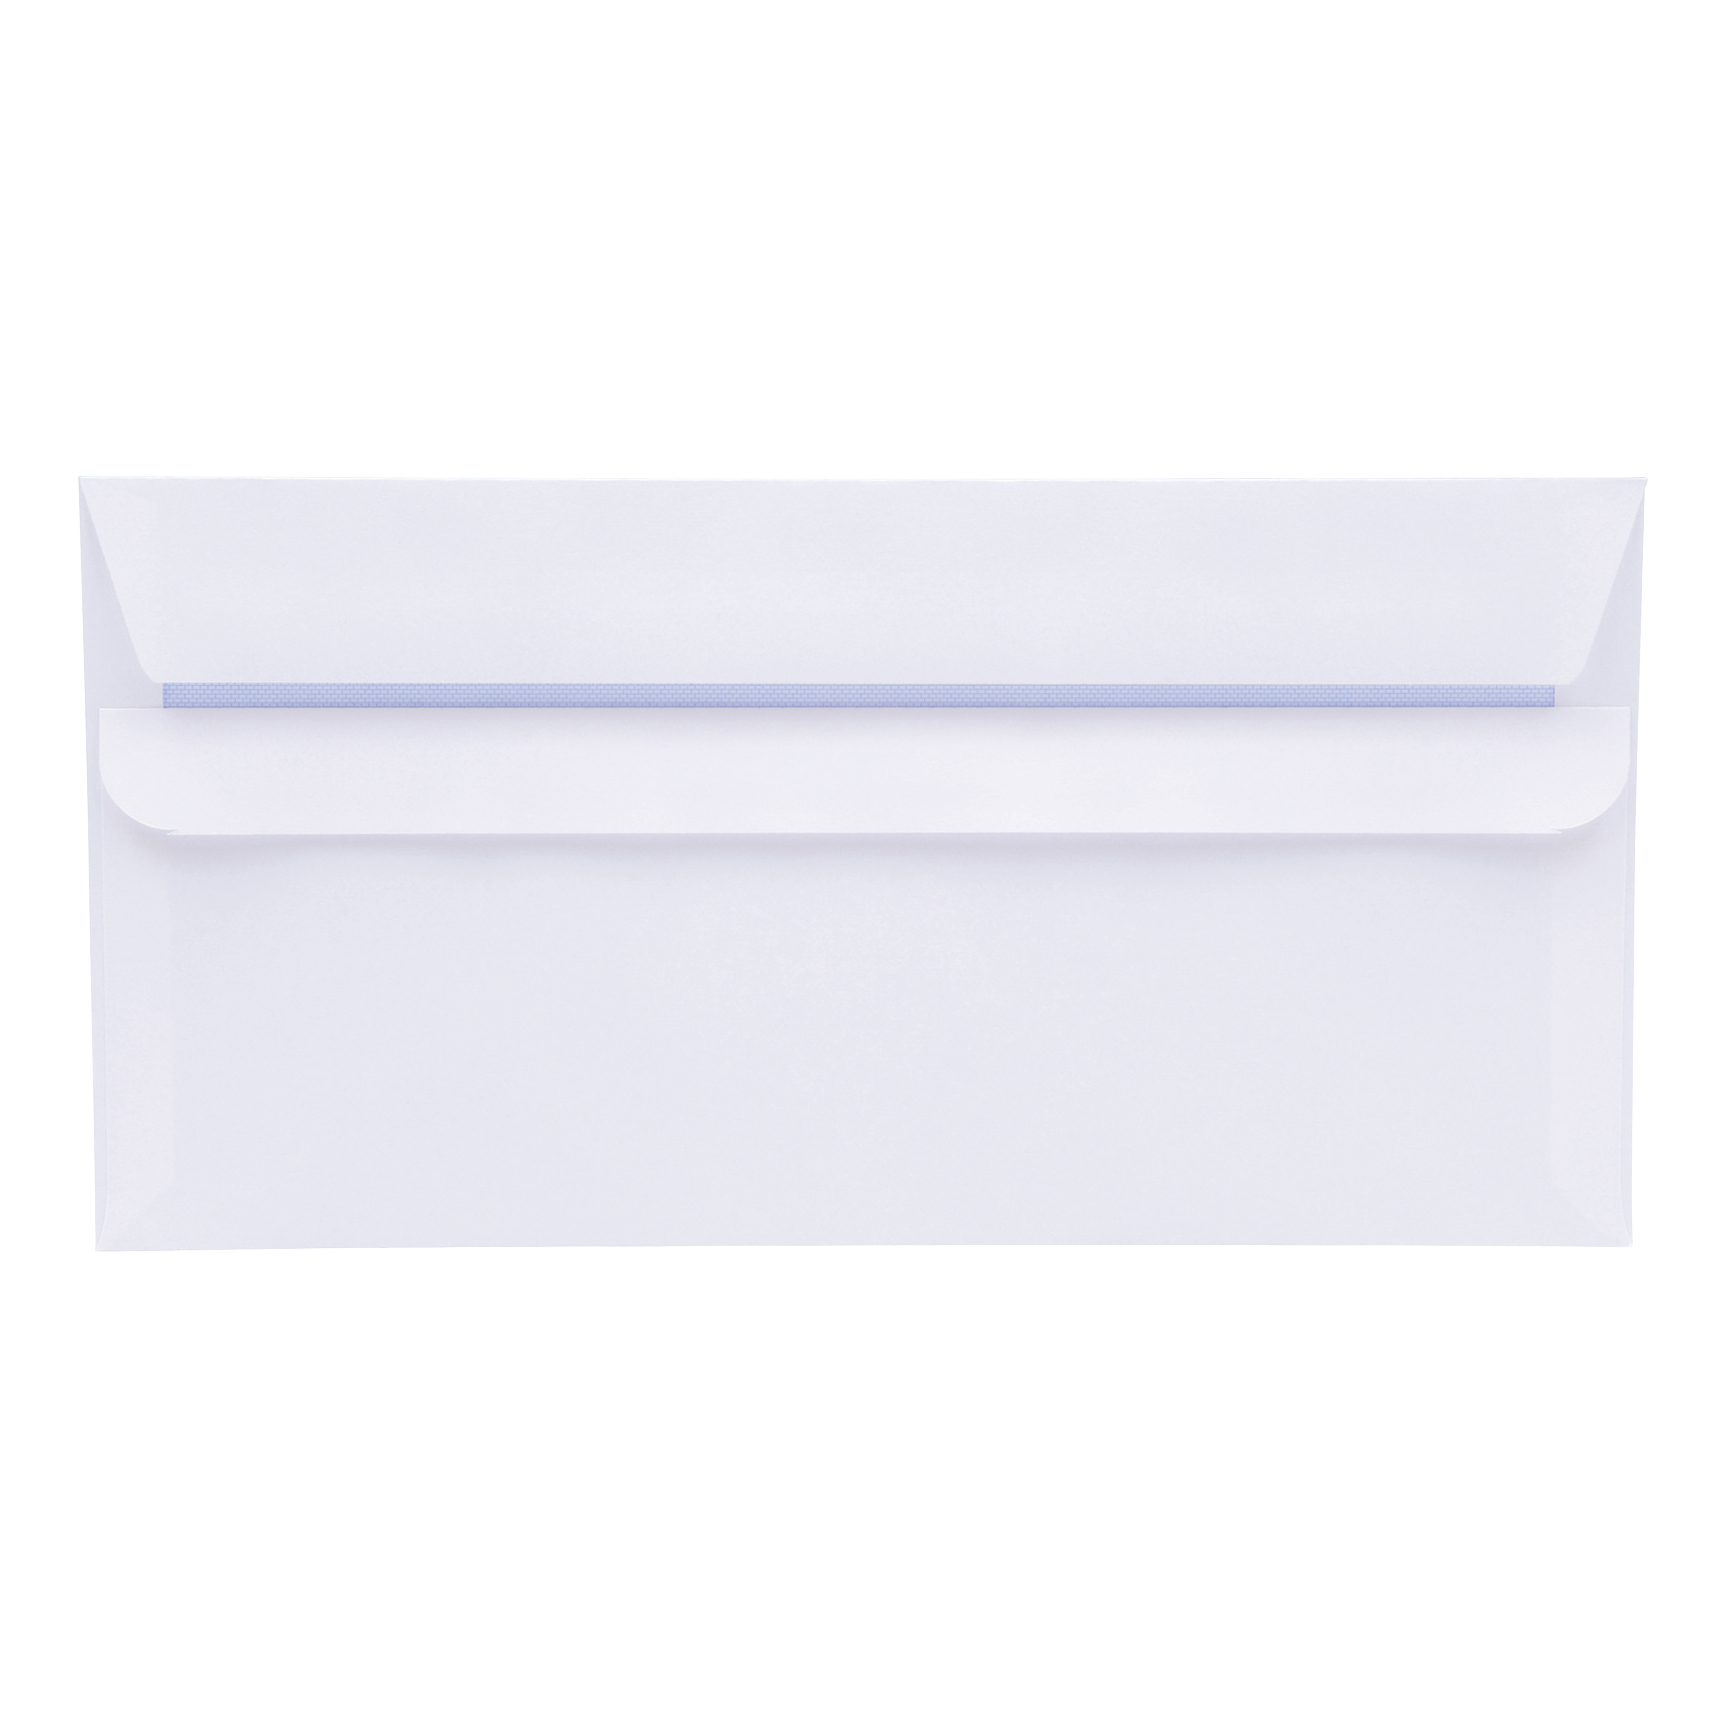 5 Star Office Envelopes PEFC Wallet Self Seal 90gsm DL 220x110mm White Pack 500